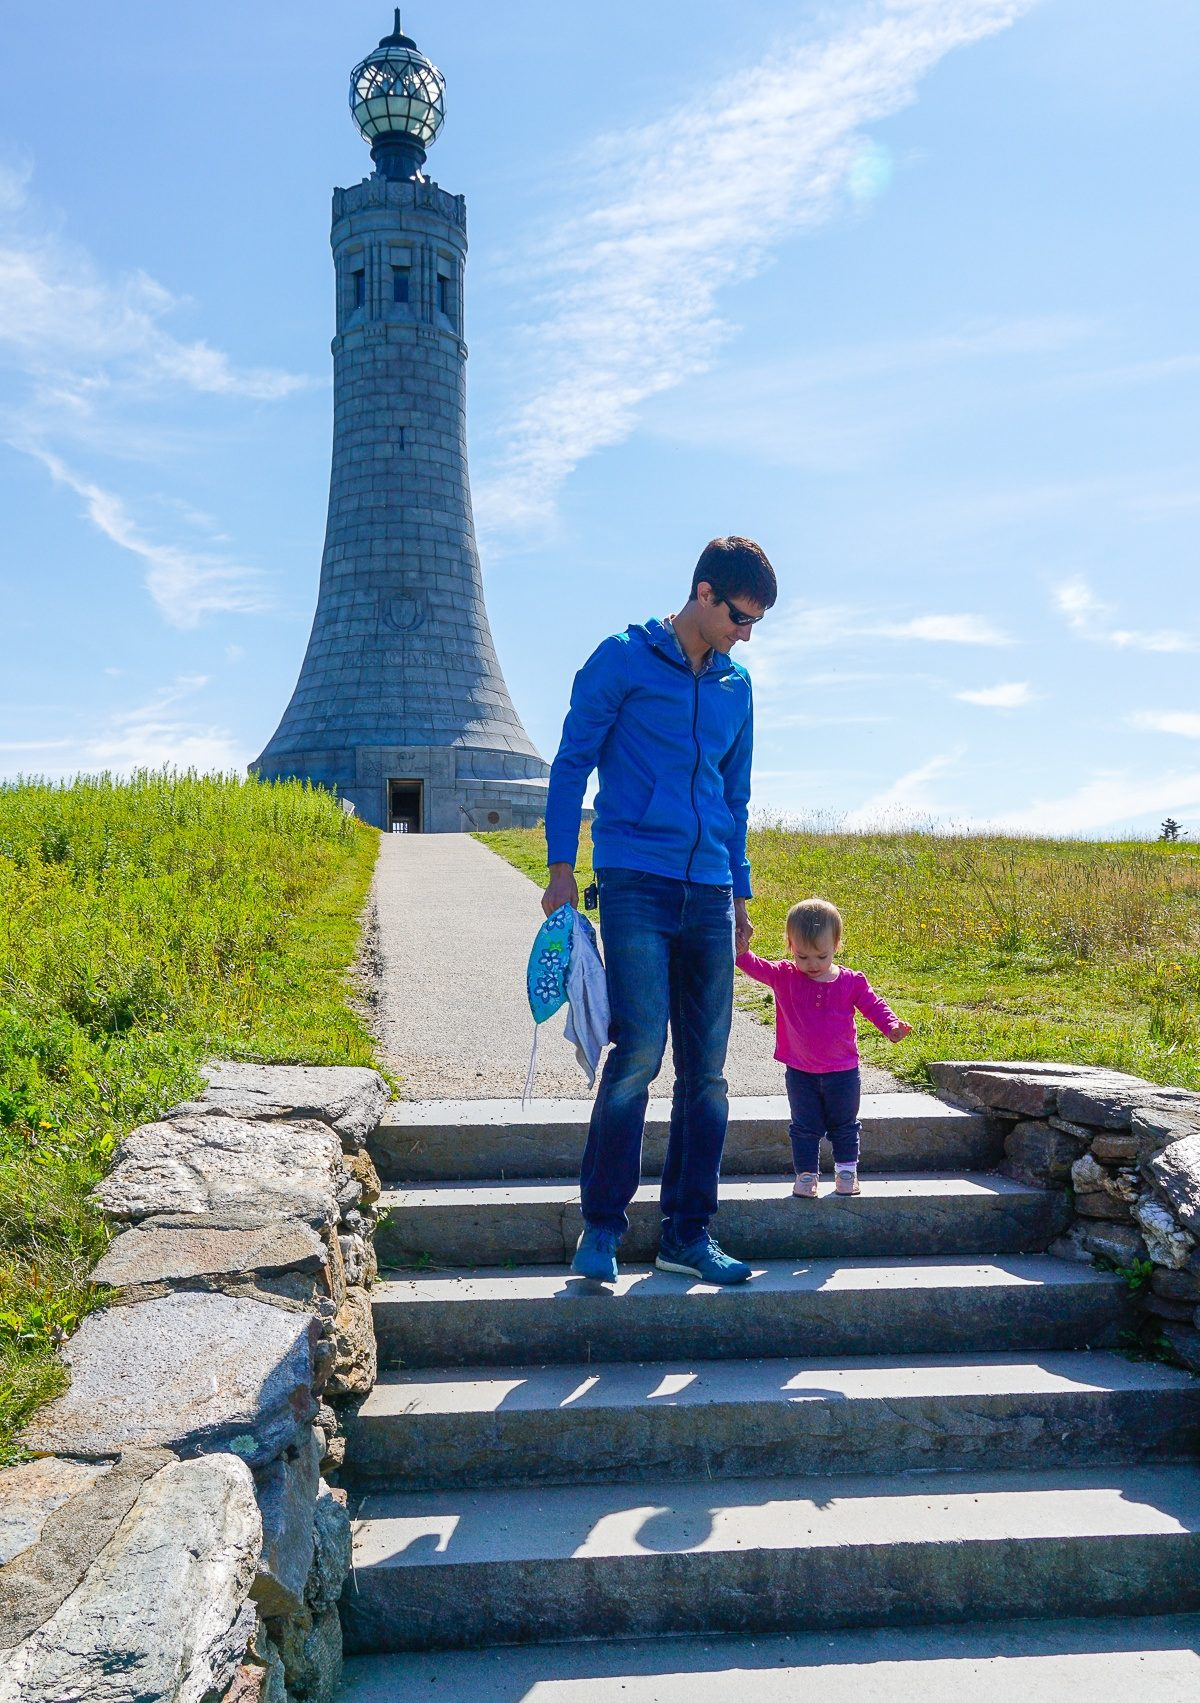 Planning travel to Mount Greylock, the highest point in Massachusetts? Here's the easiest way up the mountain to see great New England views, even with young kids. Pictured: the Veterans War Memorial Tower.